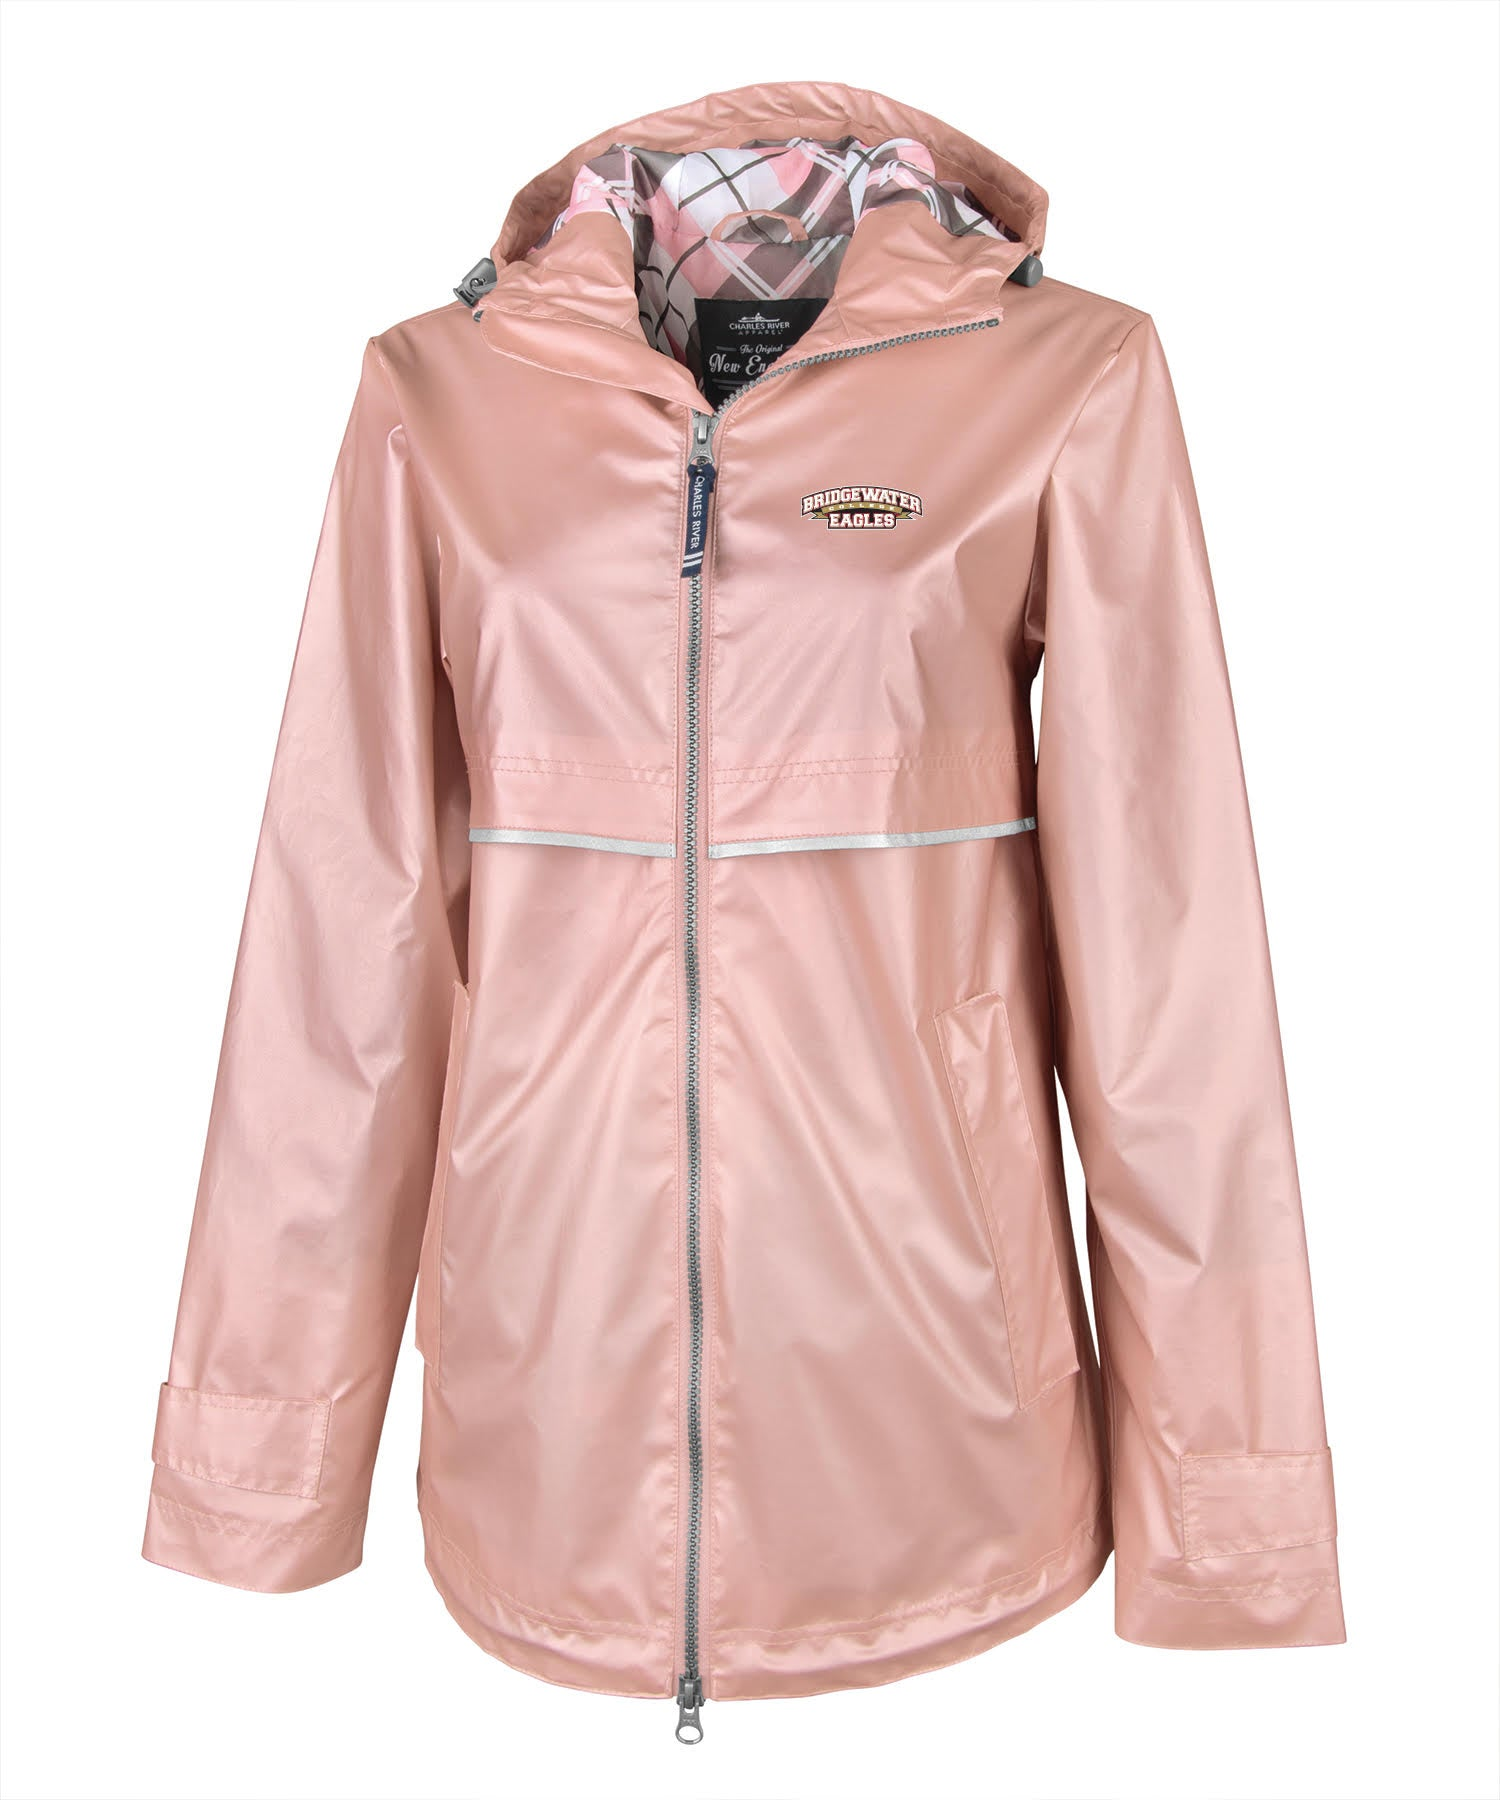 Bridgewater College Charles River Rose Gold/ Plaid Women's Rain Jacket